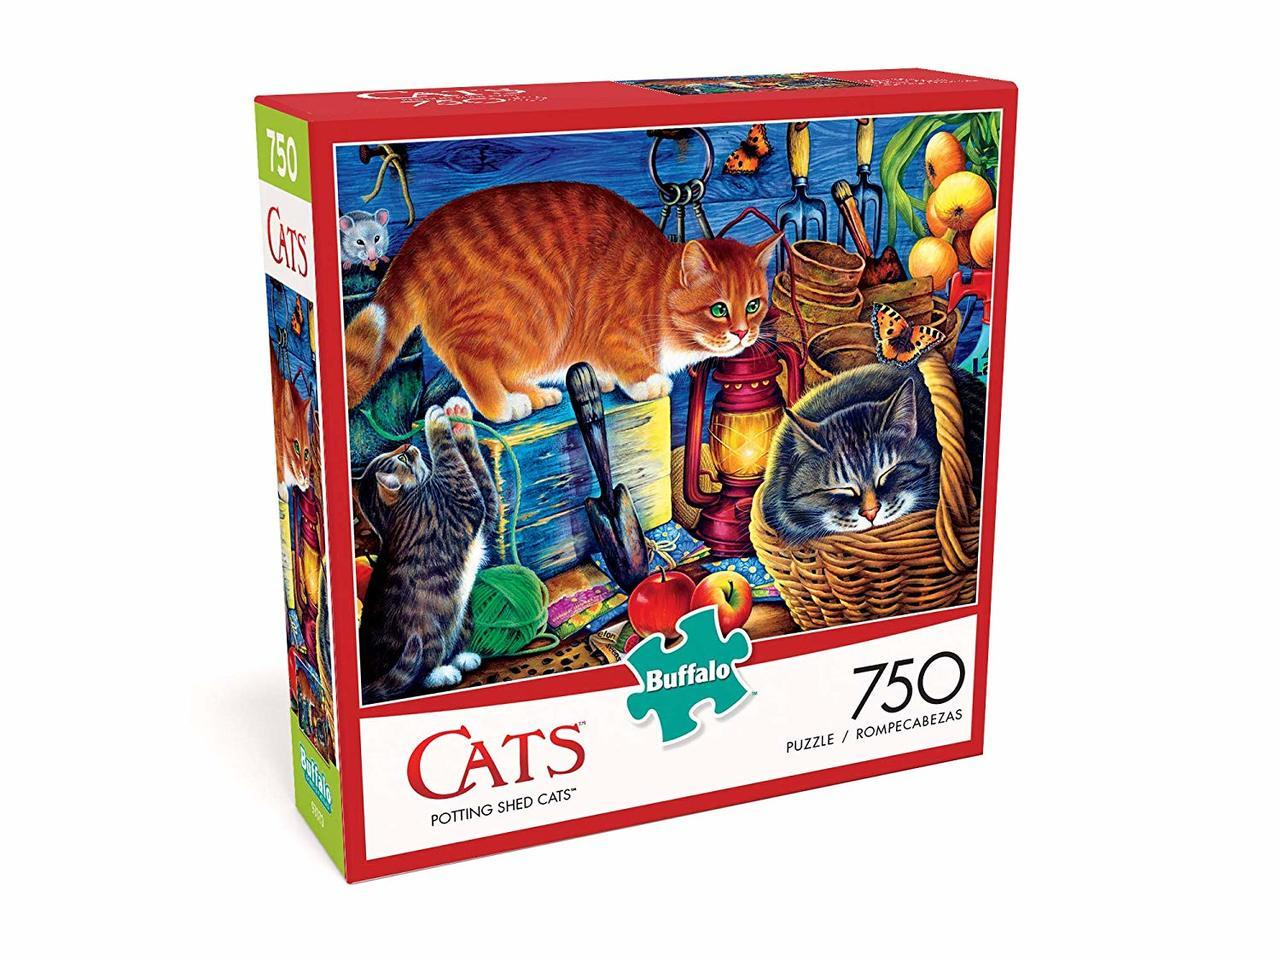 Potting Shed Cats - 750pc Jigsaw Puzzle by Buffalo Games  			  					NEW - image 1